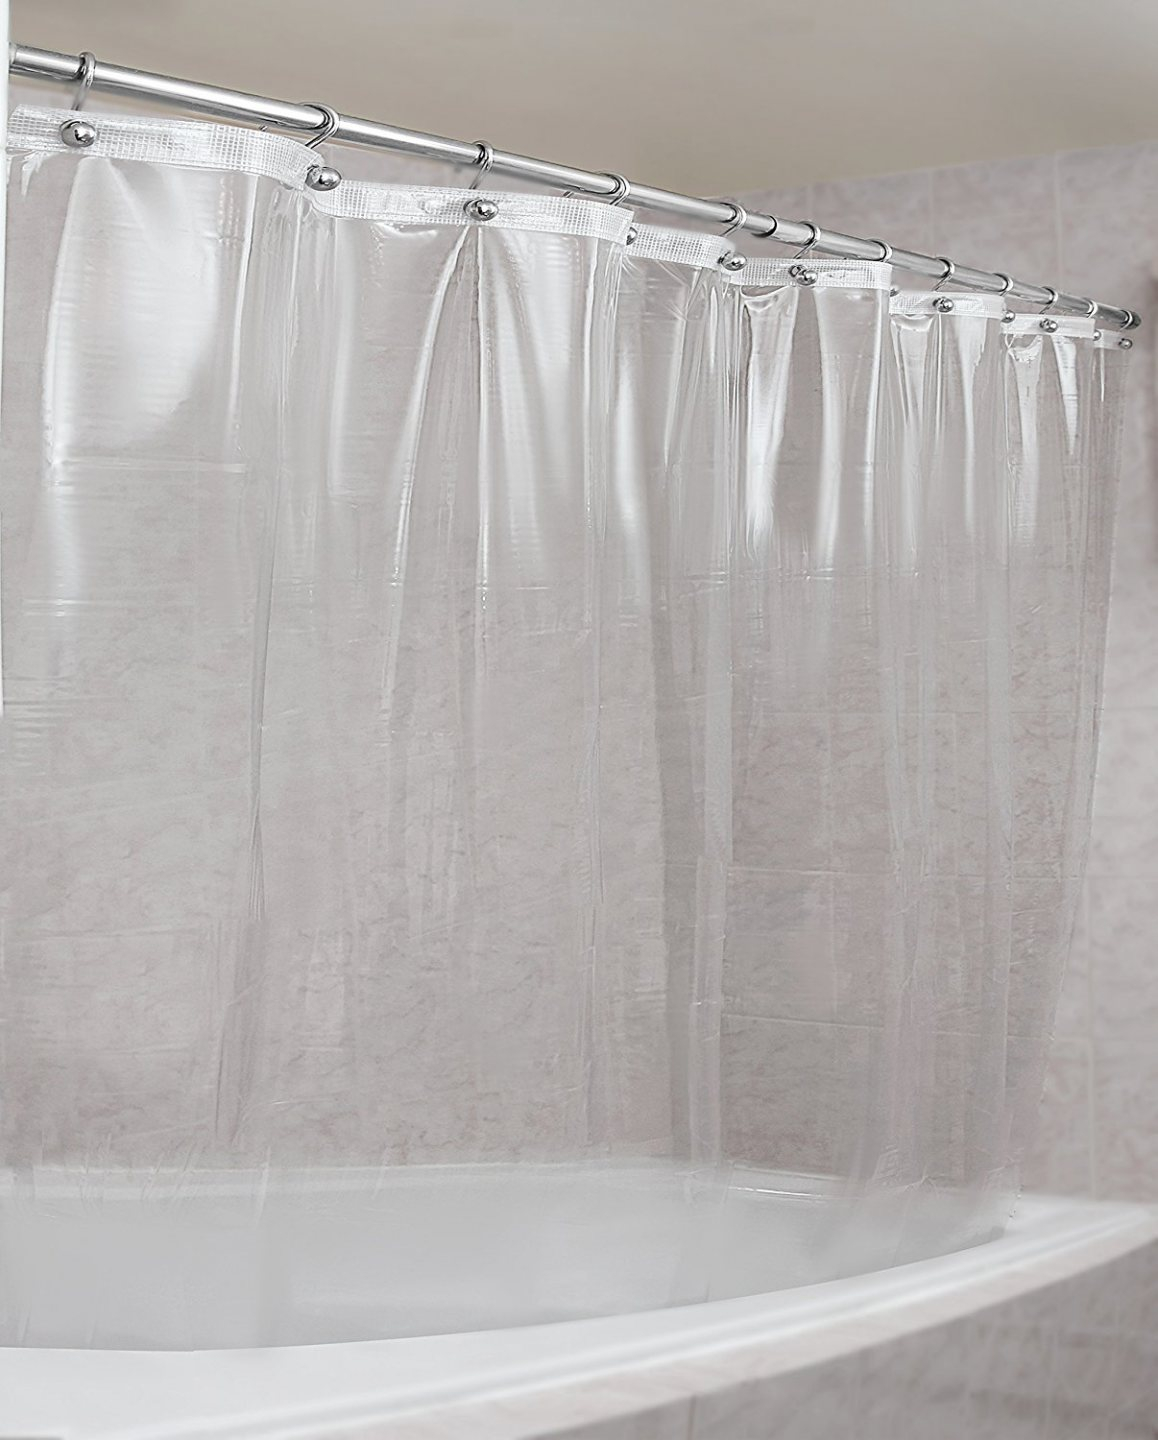 Clear Plastic Shower Curtain Rods • Shower Curtains Ideas